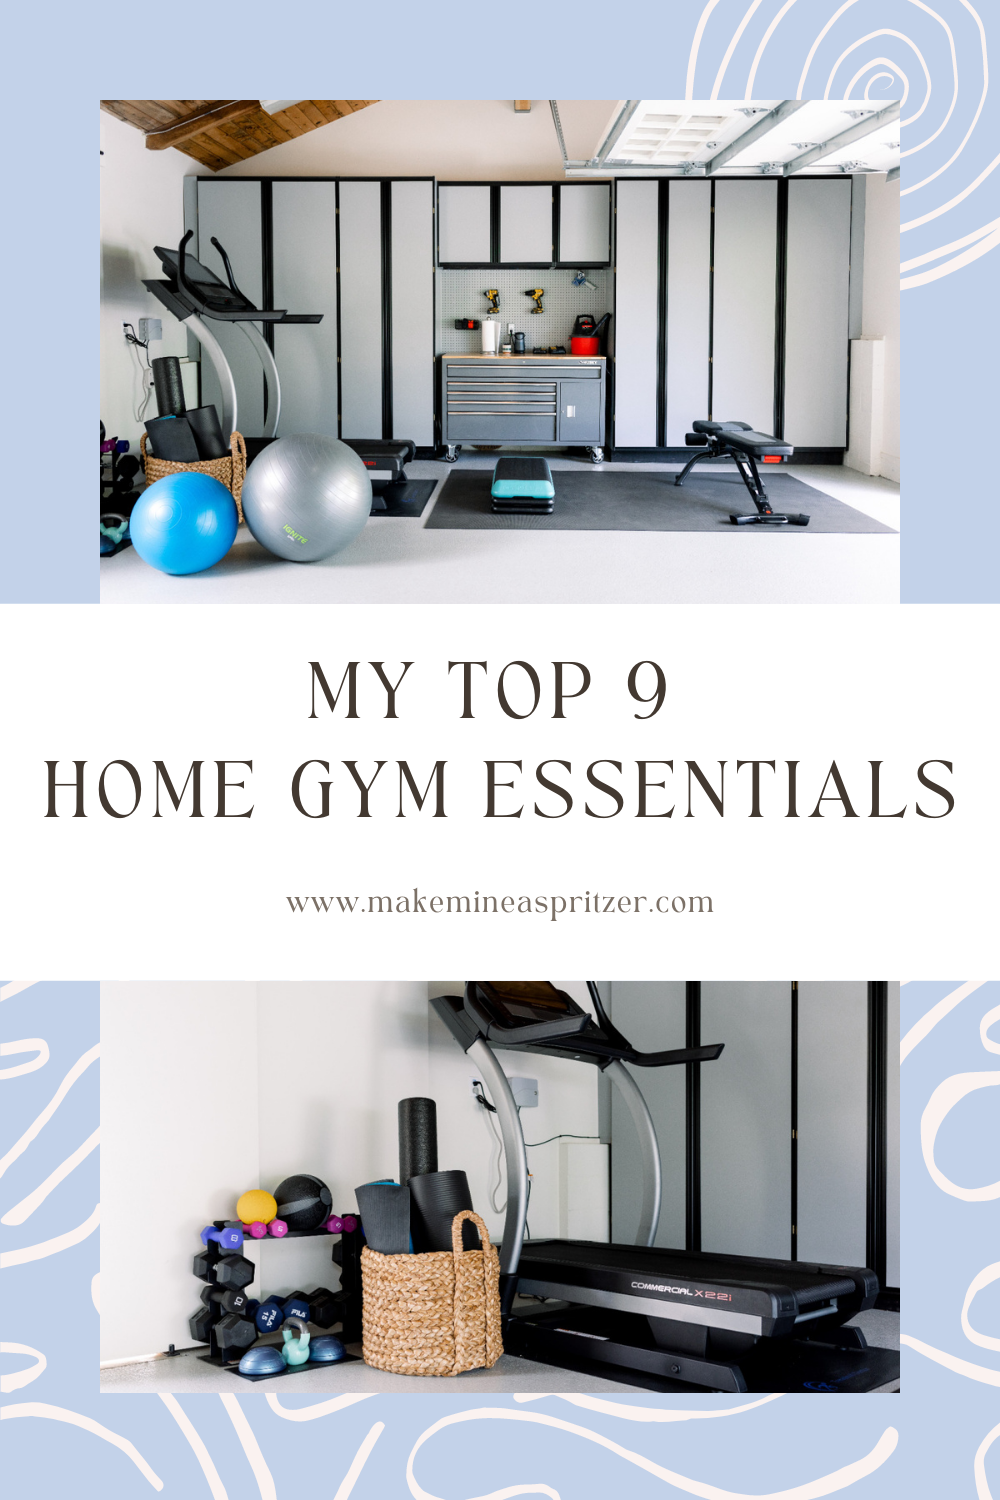 Top 9 Home Gym Essentials Pin Collage